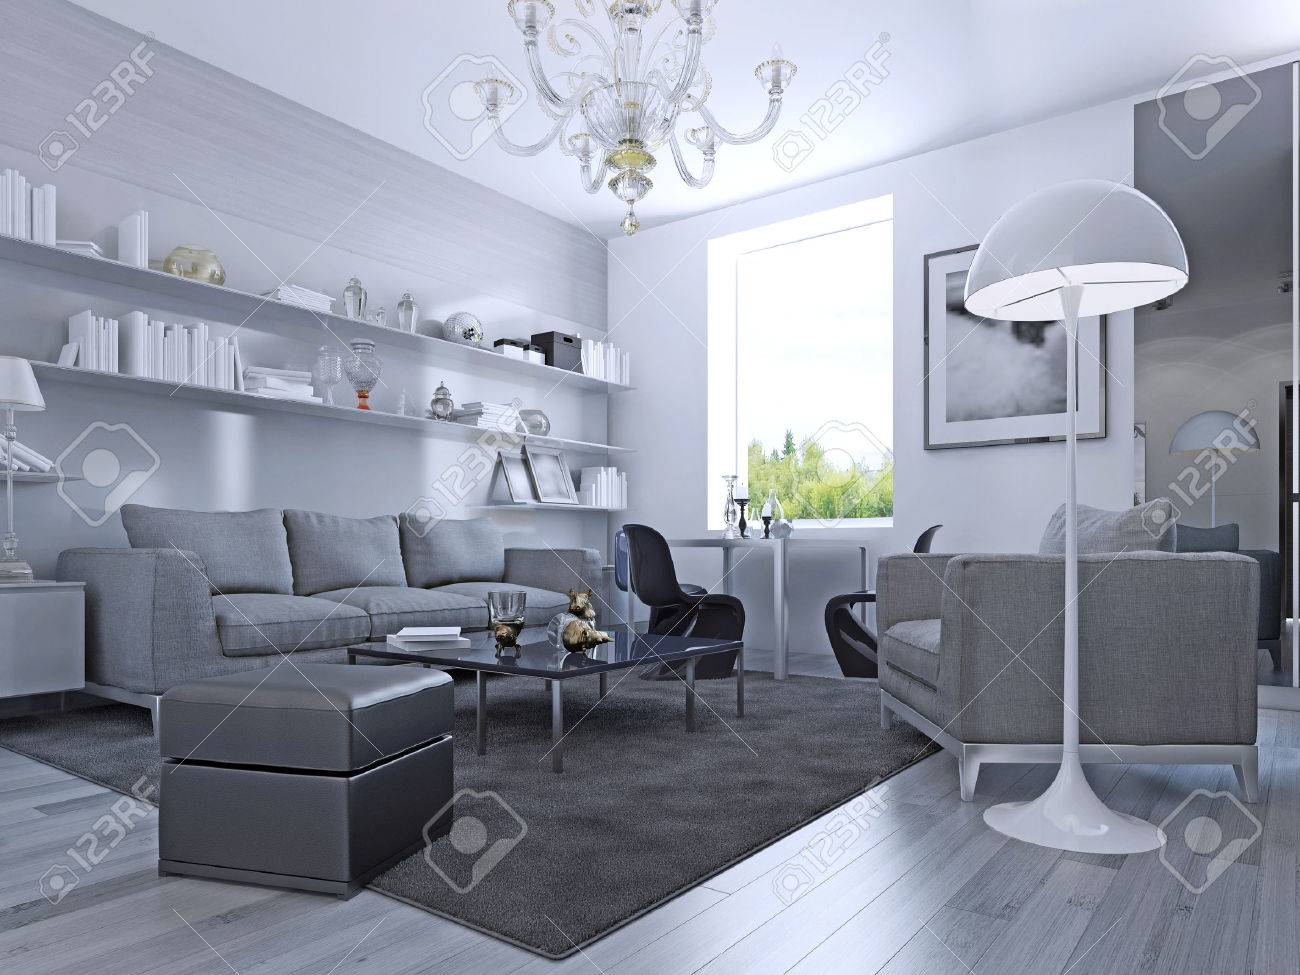 Living Room In Modern Style Elegant Living Room With White Walls